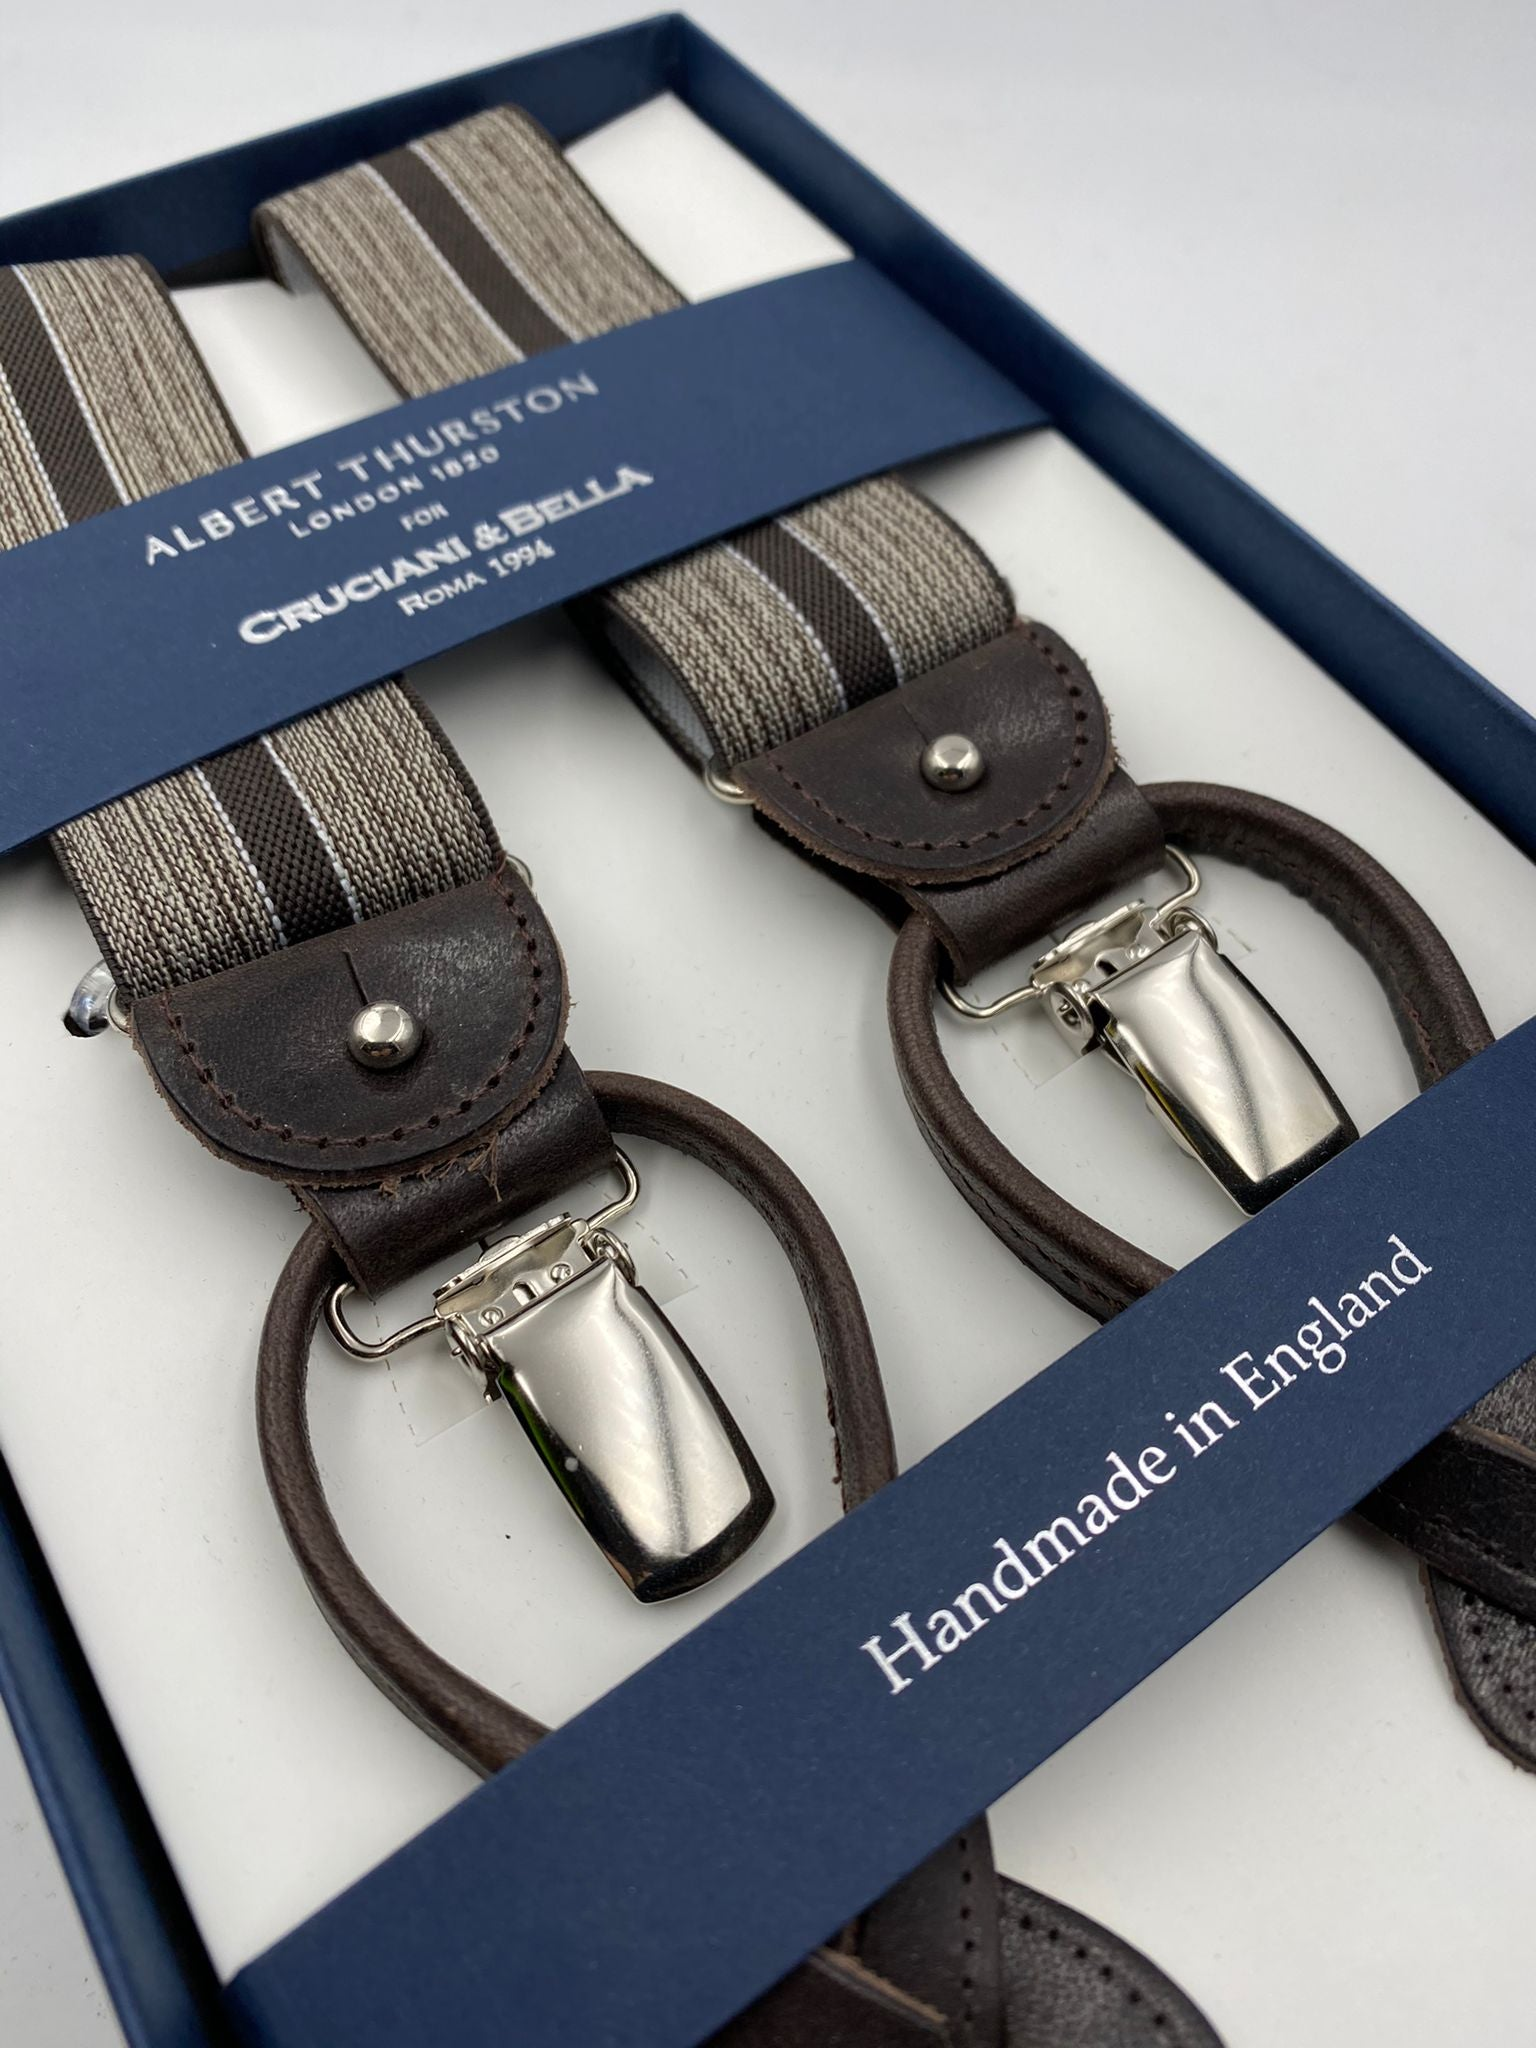 Albert Thurston for Cruciani & Bella Made in England 2 in 1 Adjustable Sizing 35 mm elastic braces Brown Stripes Y-Shaped Nickel Fittings #4877